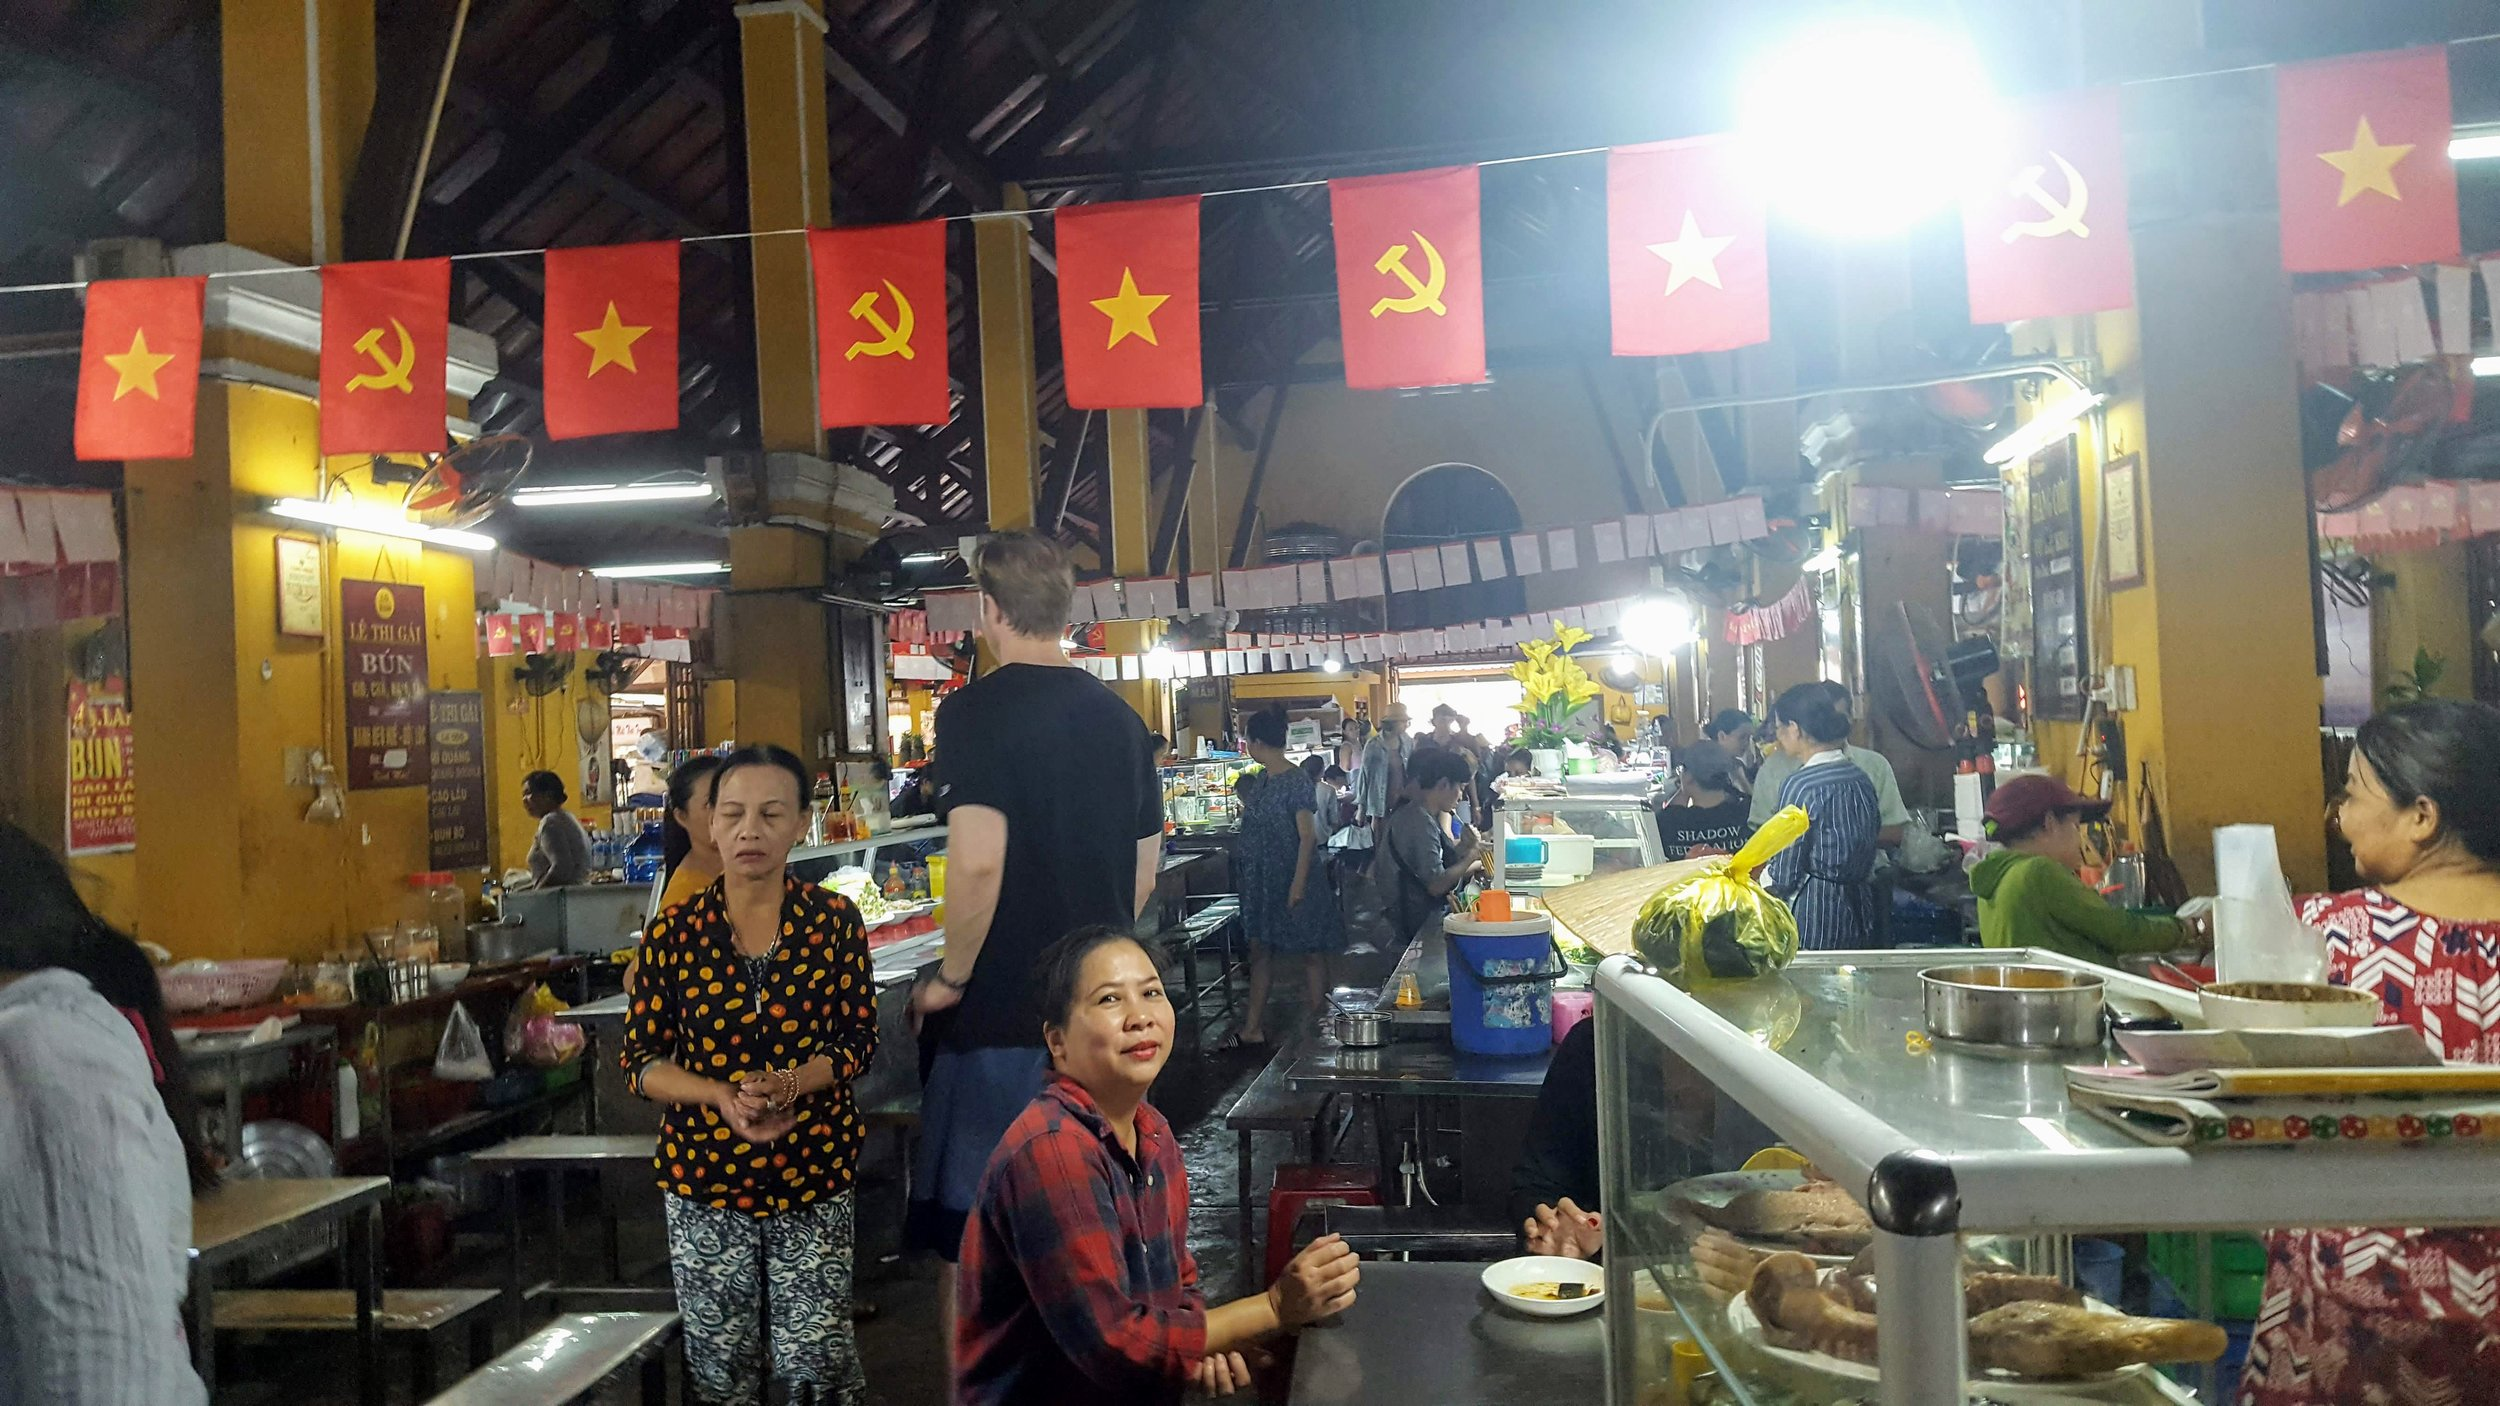 Hoi An food hall